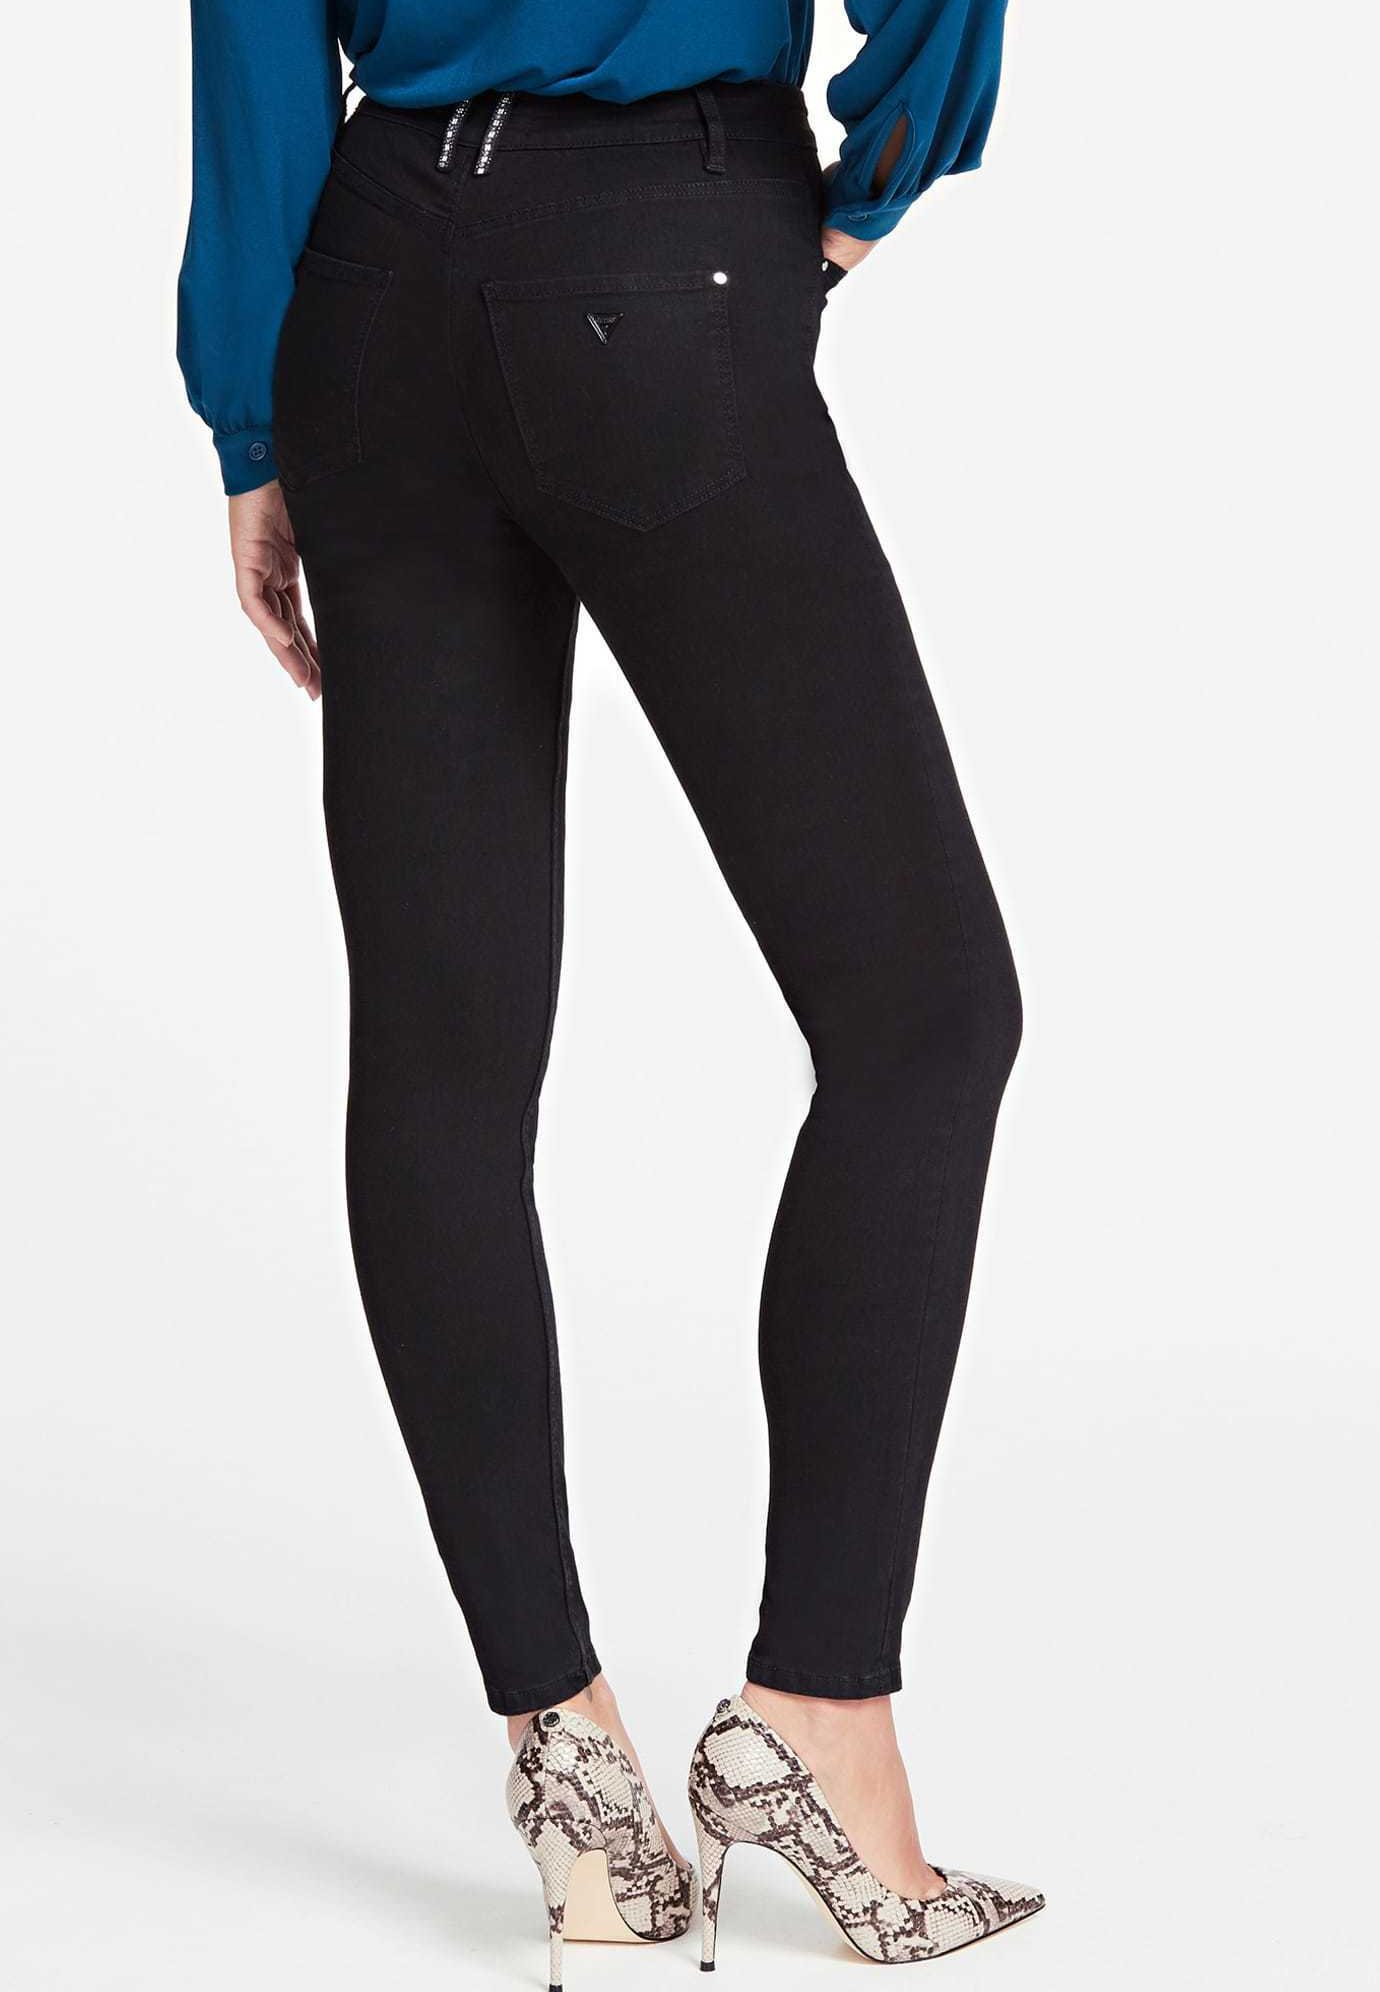 Guess Jeansy Skinny Fit - black